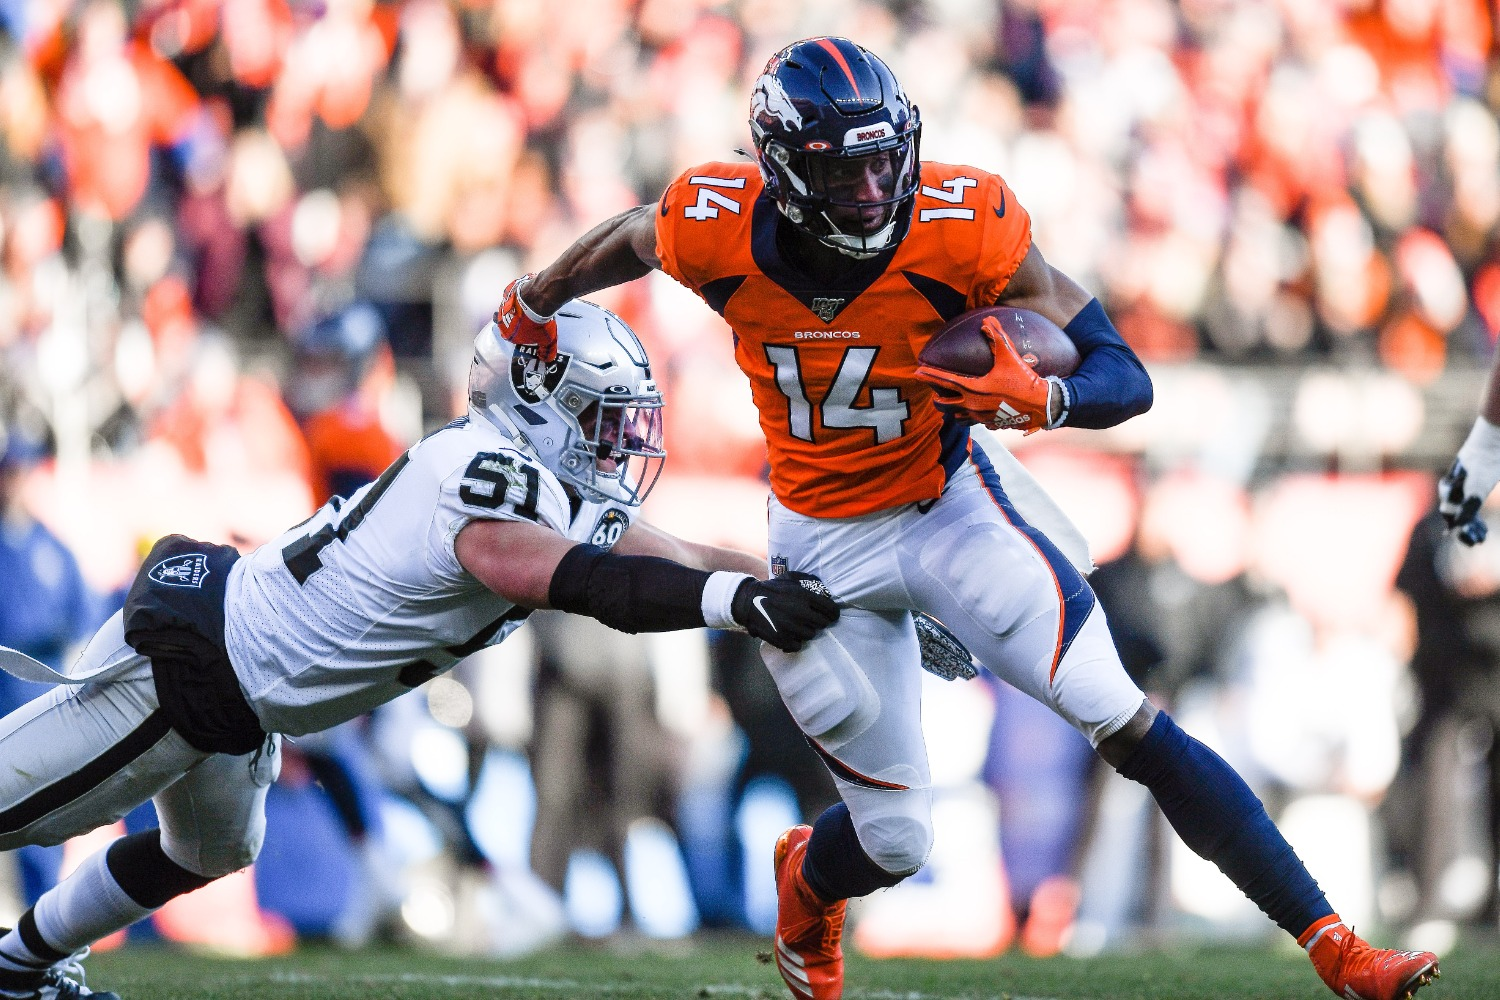 The Denver Broncos just lost Courtland Sutton for the rest of the season, which represents a brutal blow for a team with exciting potential on offense.